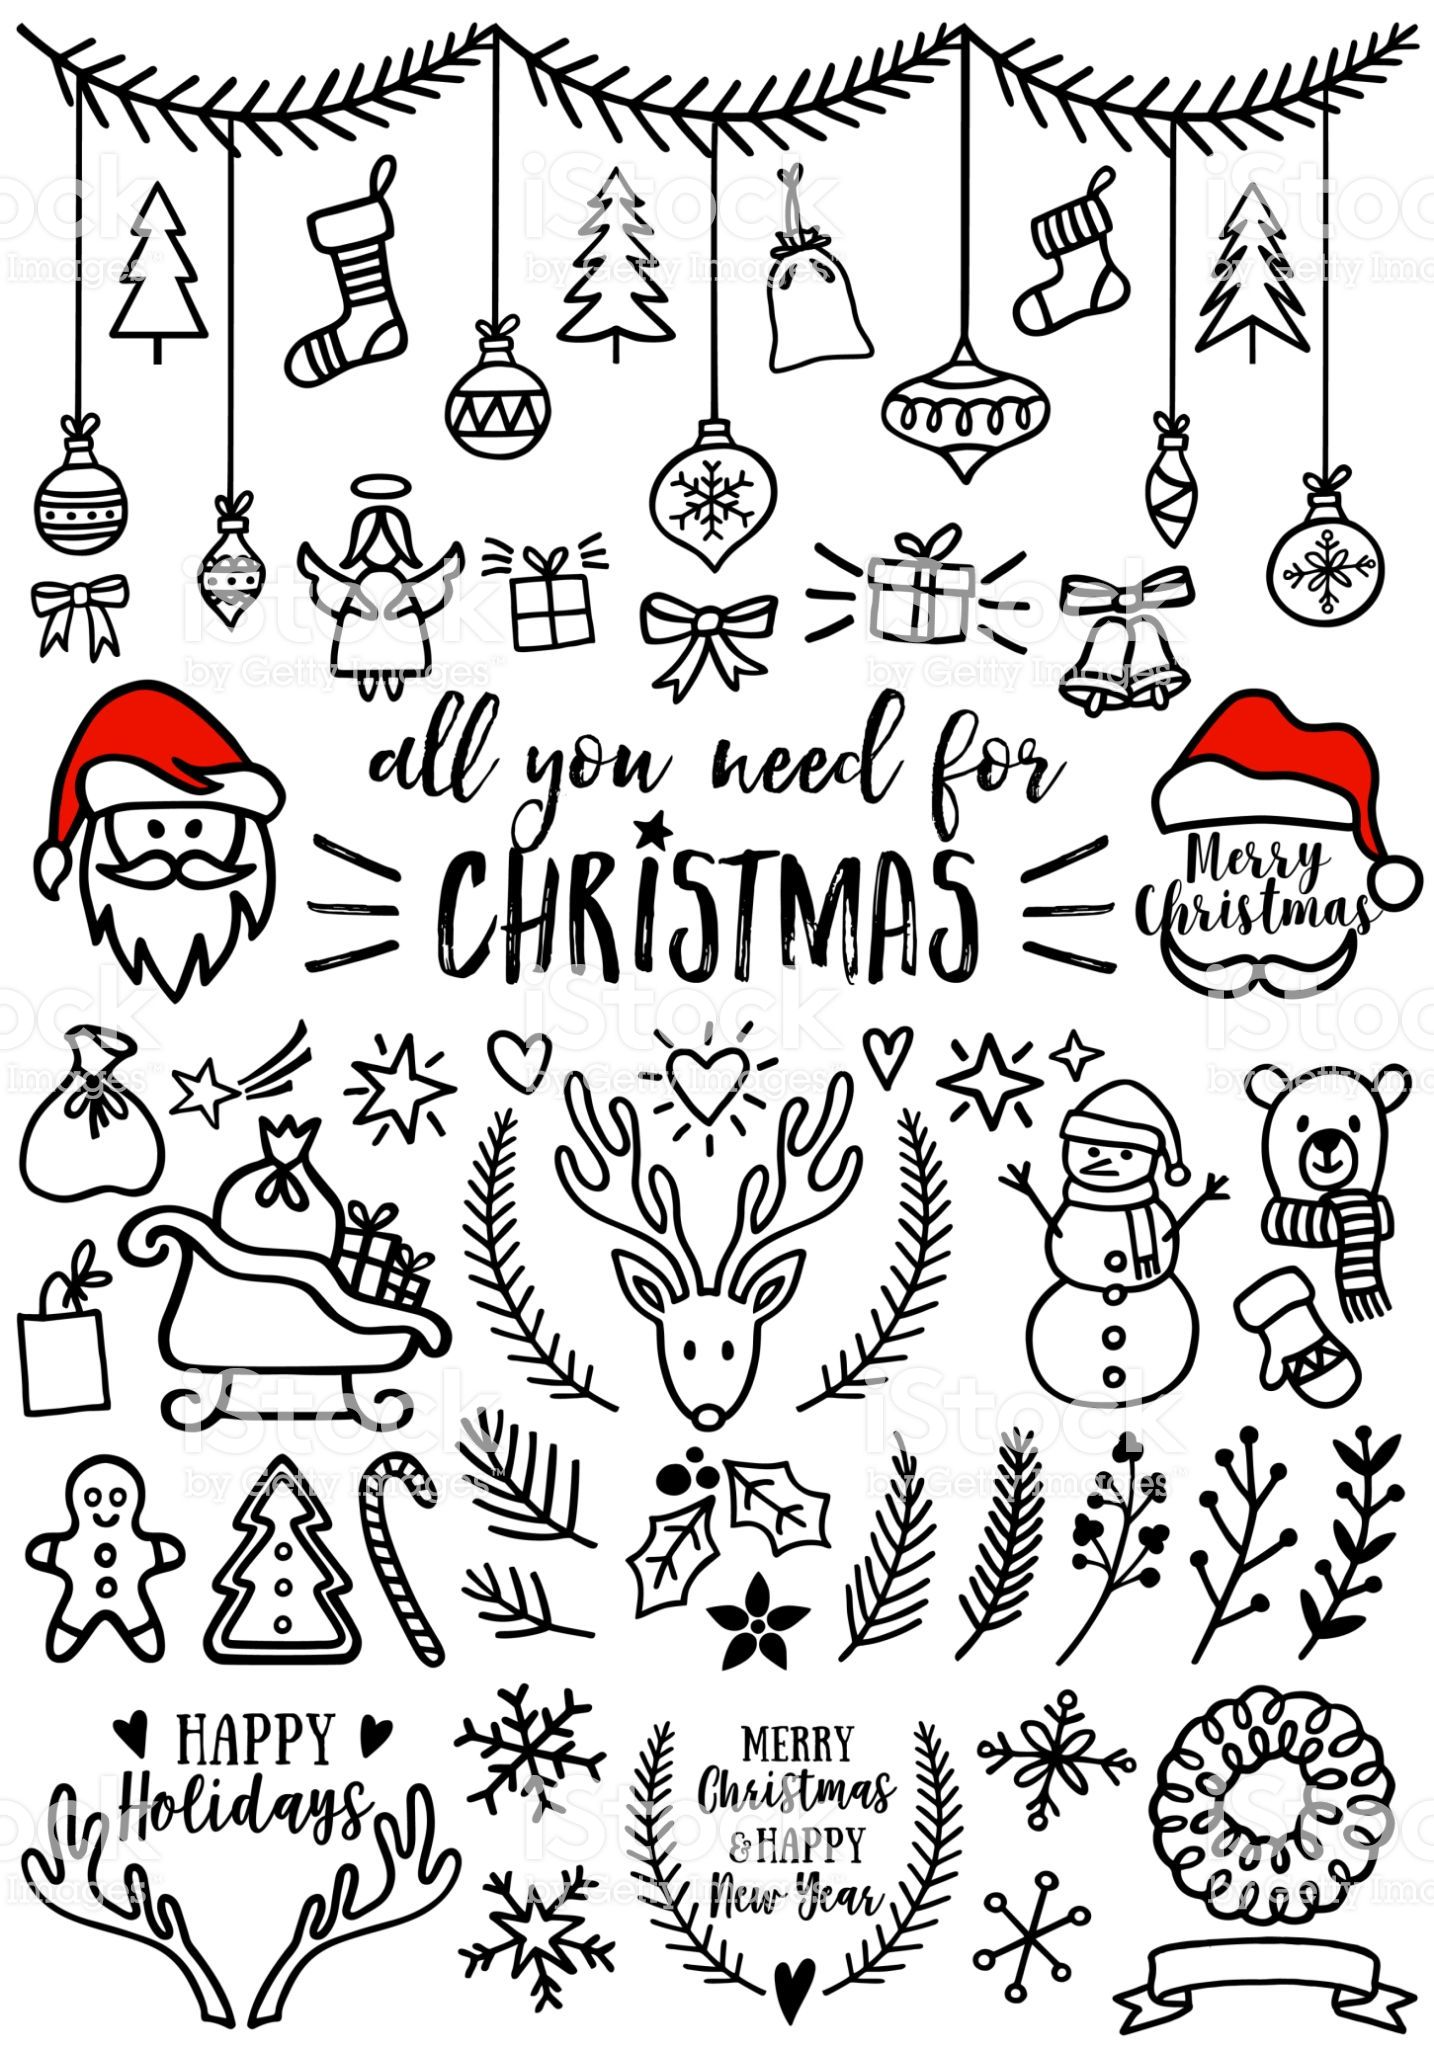 hand drawn christmas doodles for cards banners set of. Black Bedroom Furniture Sets. Home Design Ideas